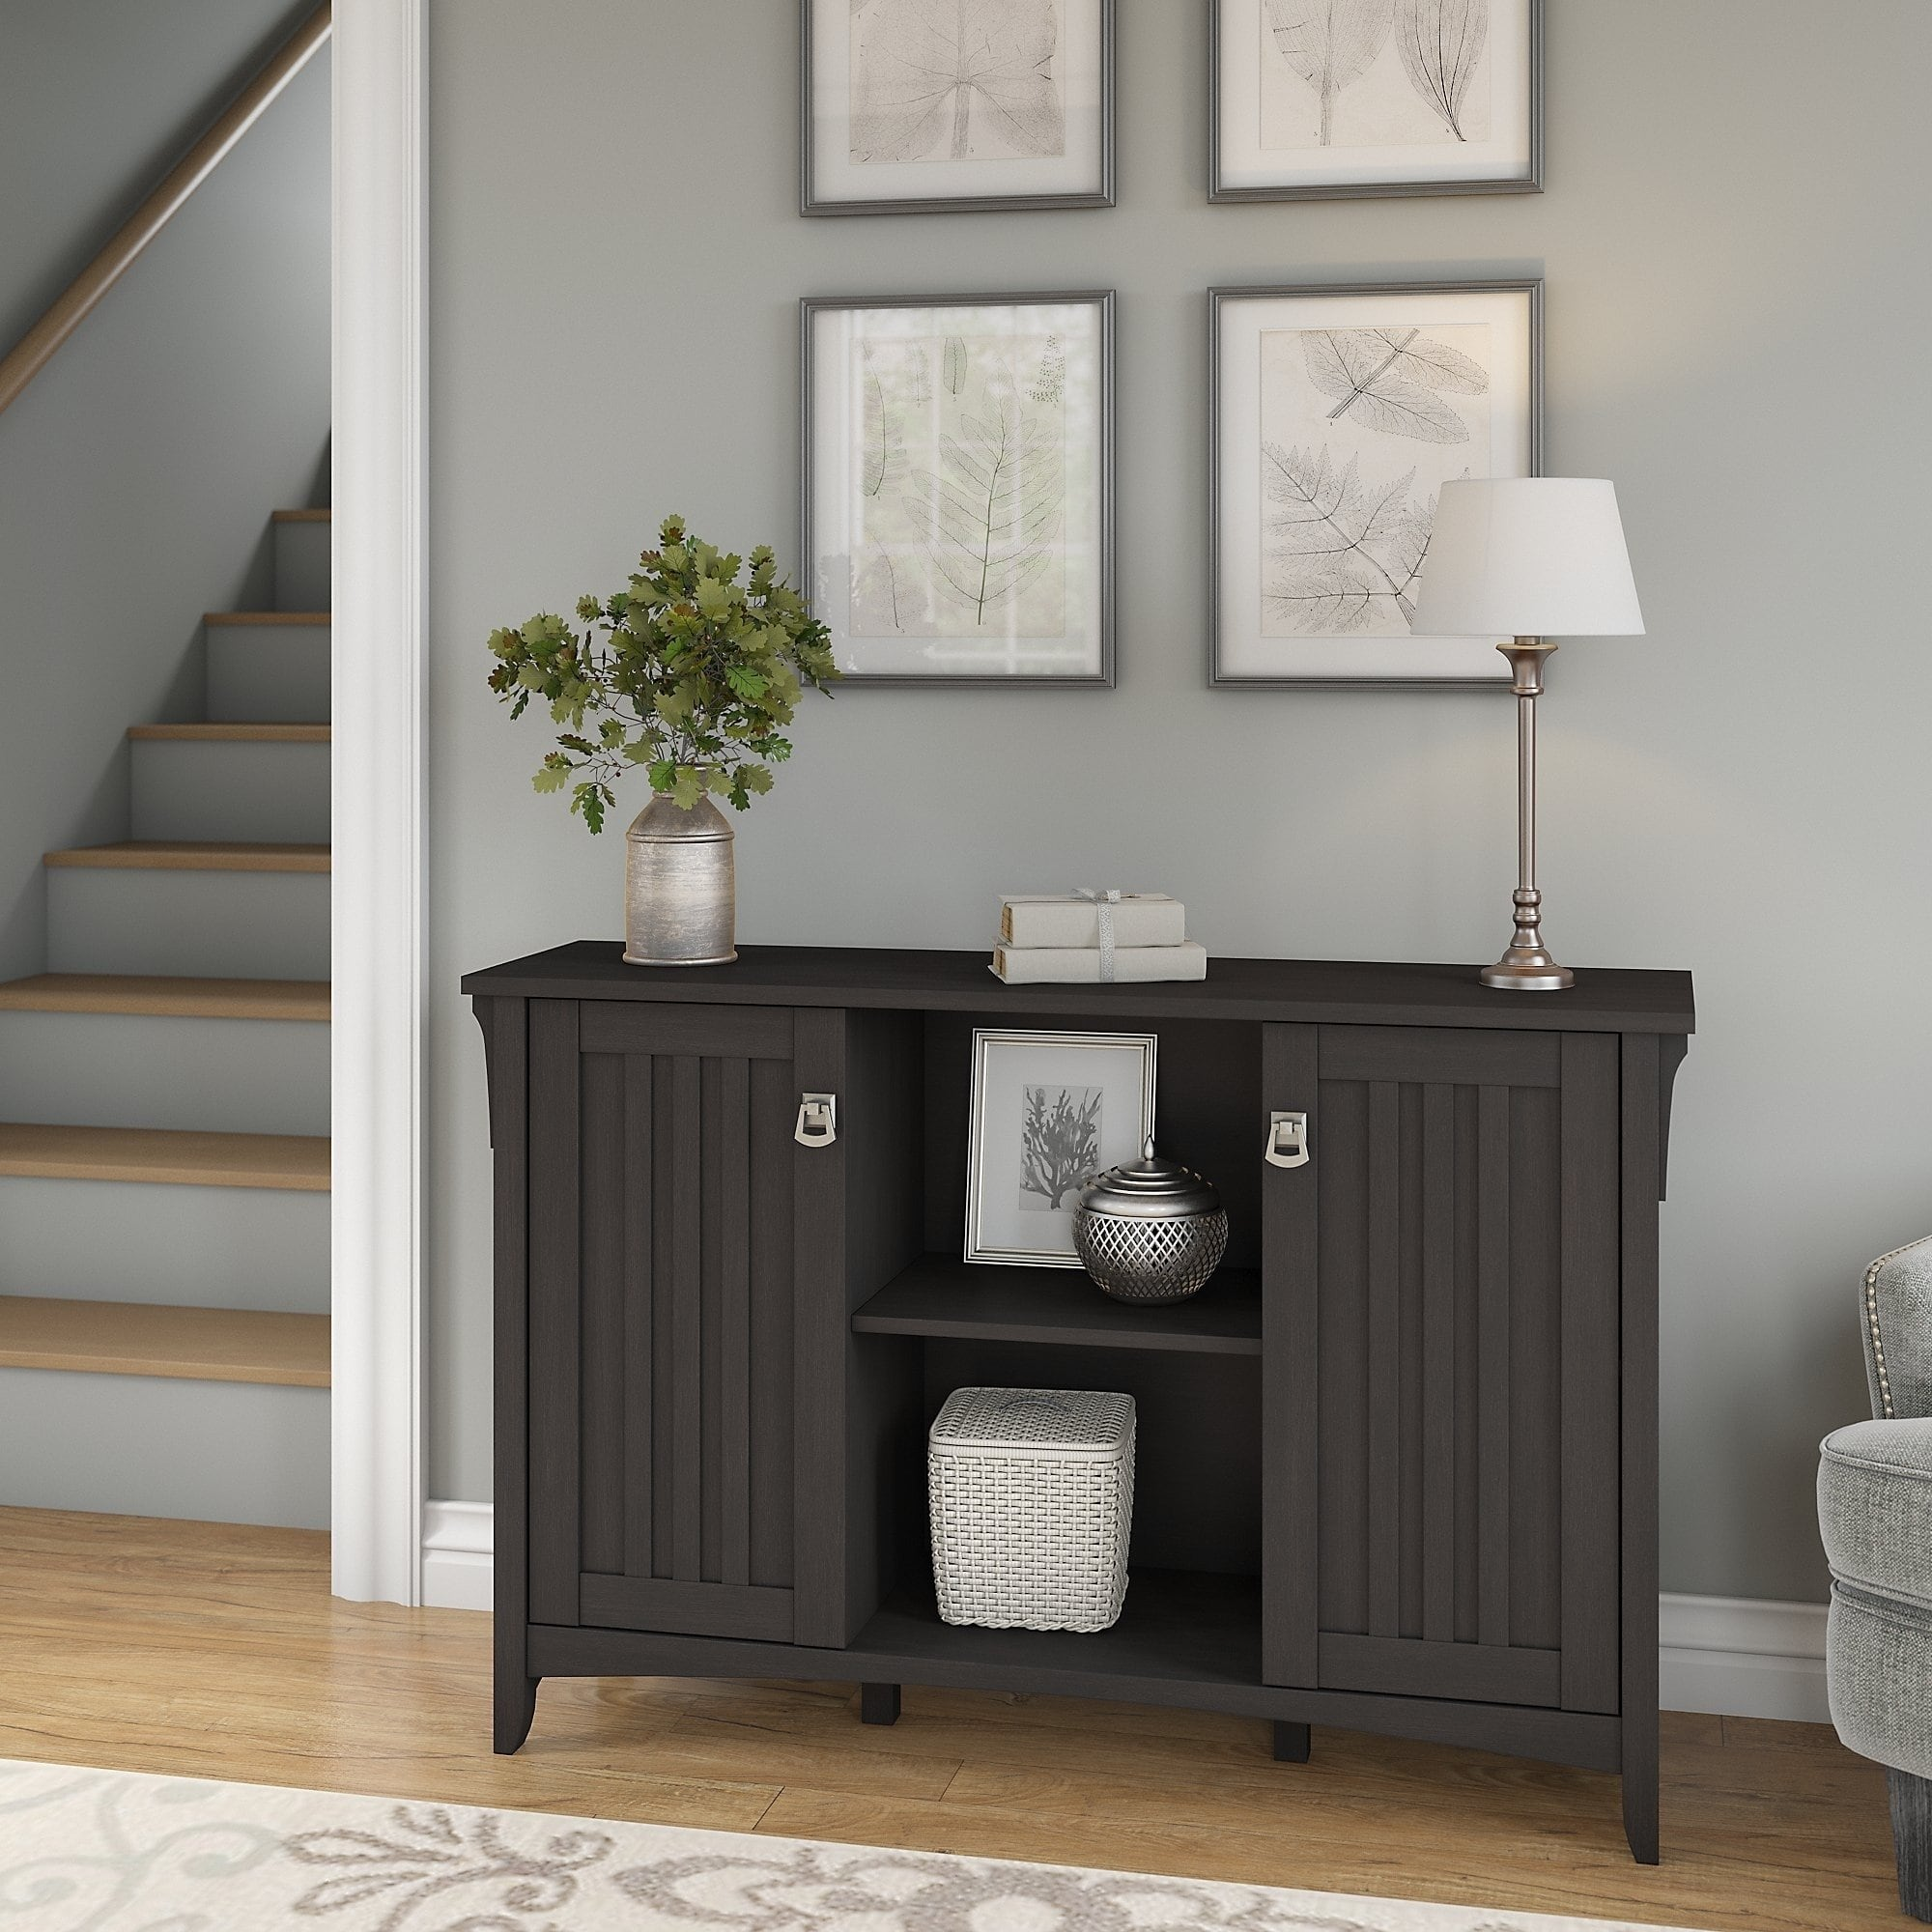 bush furniture salinas accent storage cabinet with doors vintage black bronze patio side table grey wingback chair bathroom cabinets modern trestle unfinished wood nautical